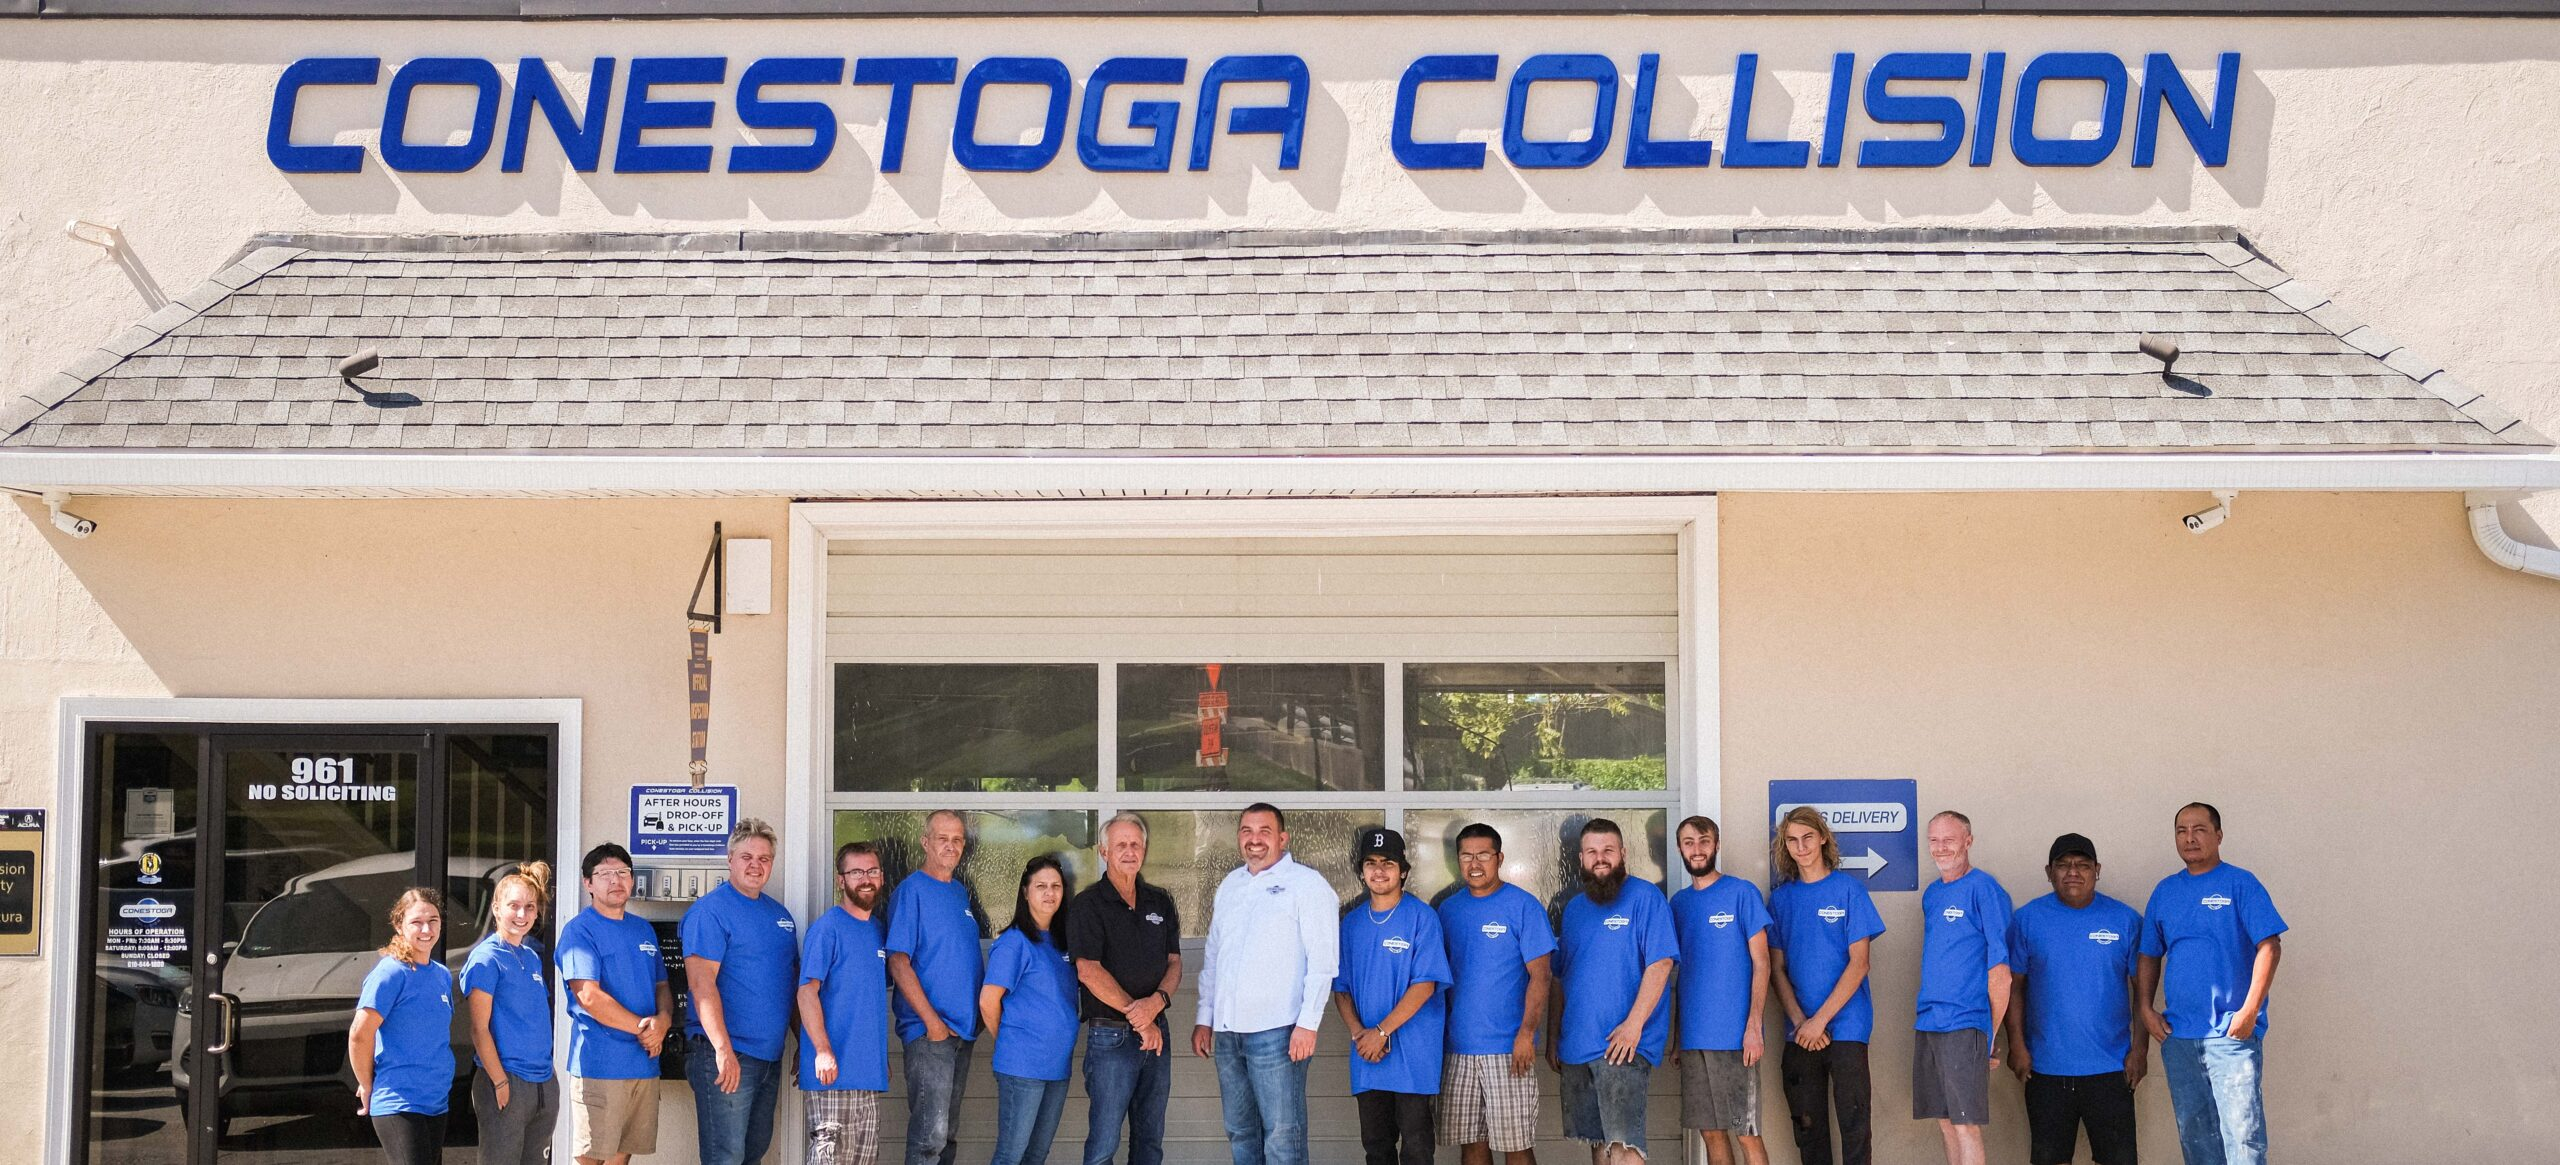 Owners Max Keller and Pete Hutchinson stand with 15 team members outside the front of Conestoga Collision